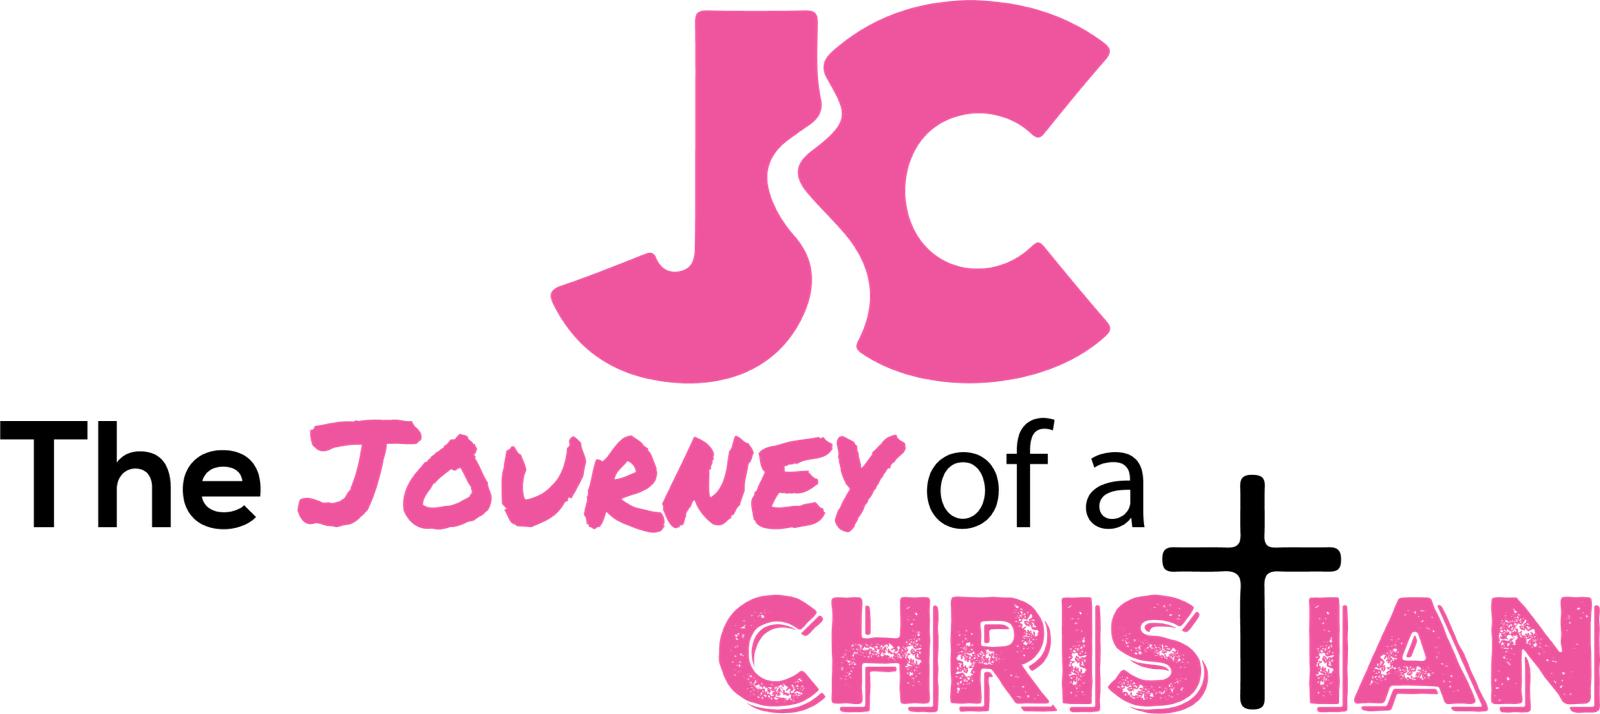 The Journey Of A Christian/Christian Magazine/Inspirational Blog